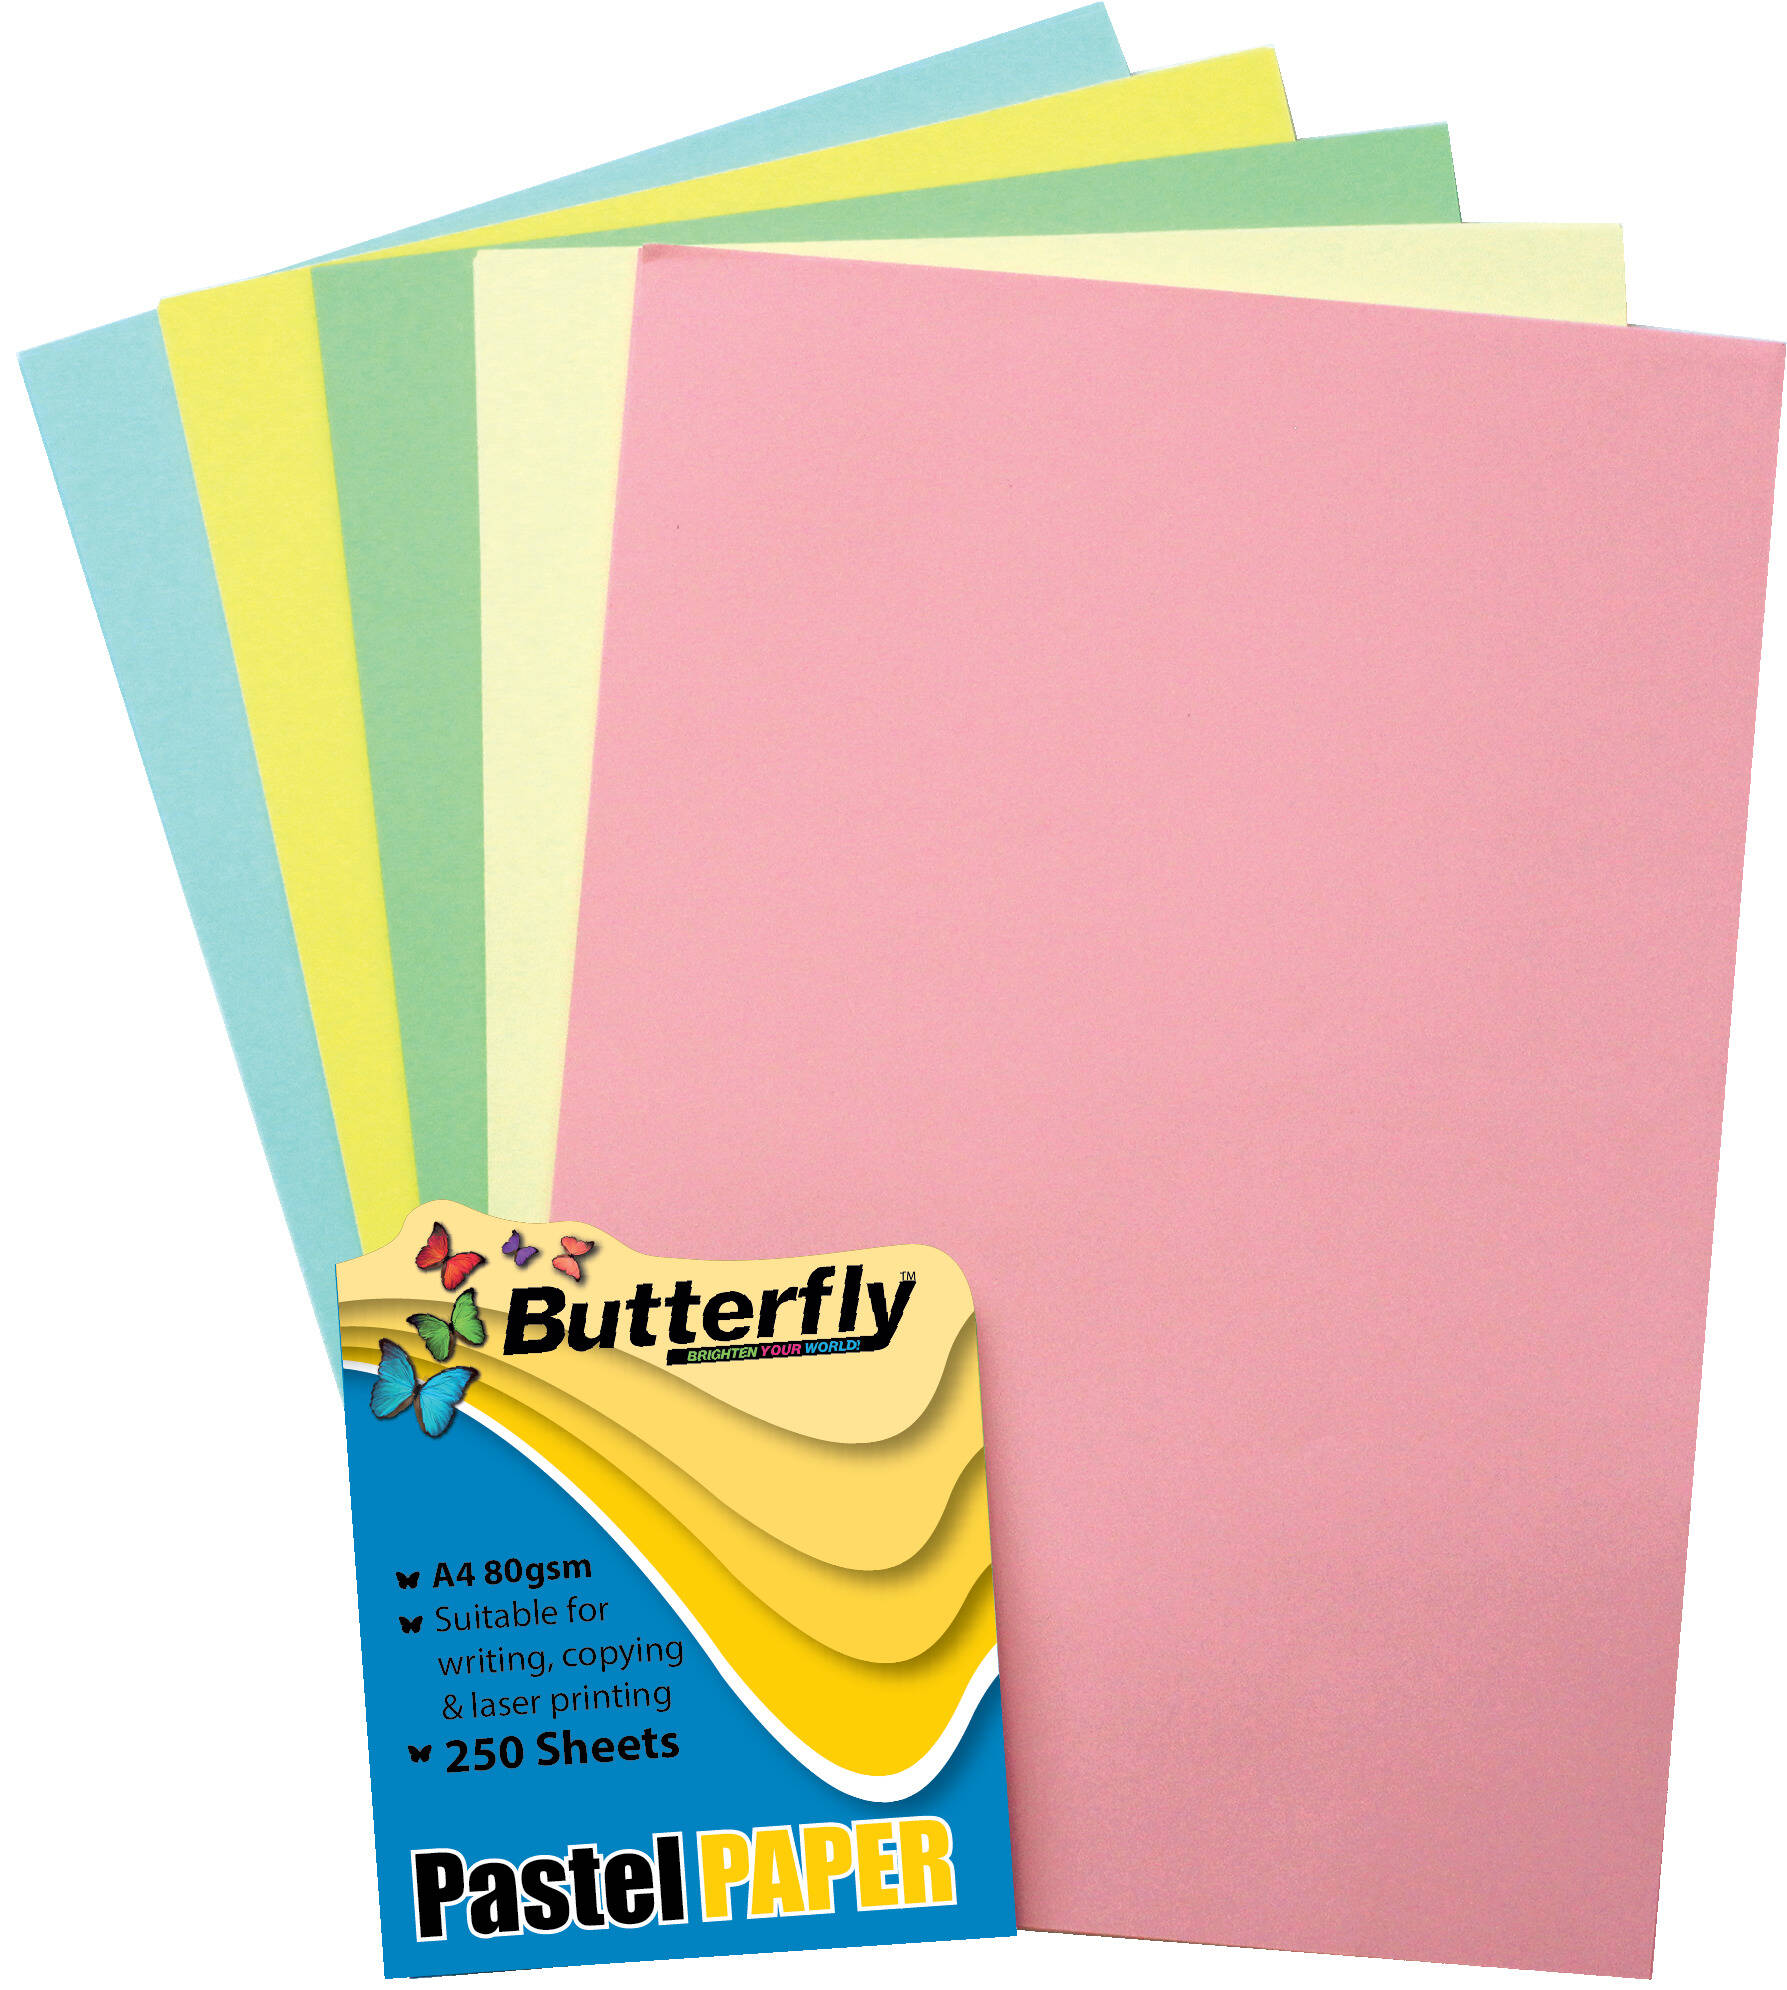 Mixed A4 Pastel Paper - Pack of 250